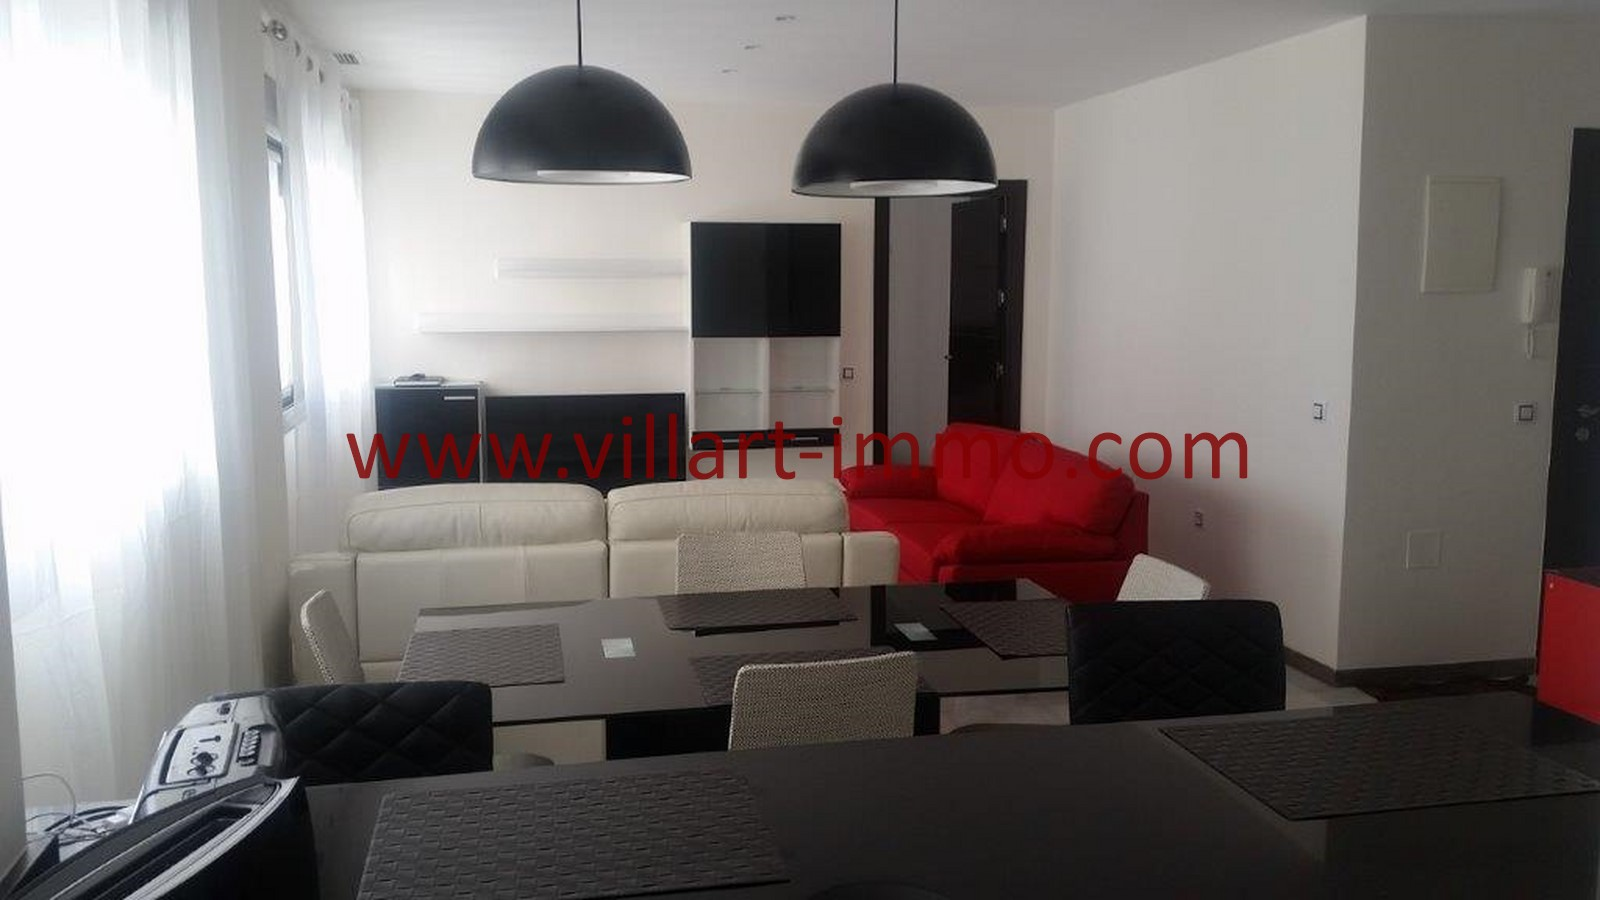 3-location-appartement-meuble-tanger-salon-l975-villart-immo